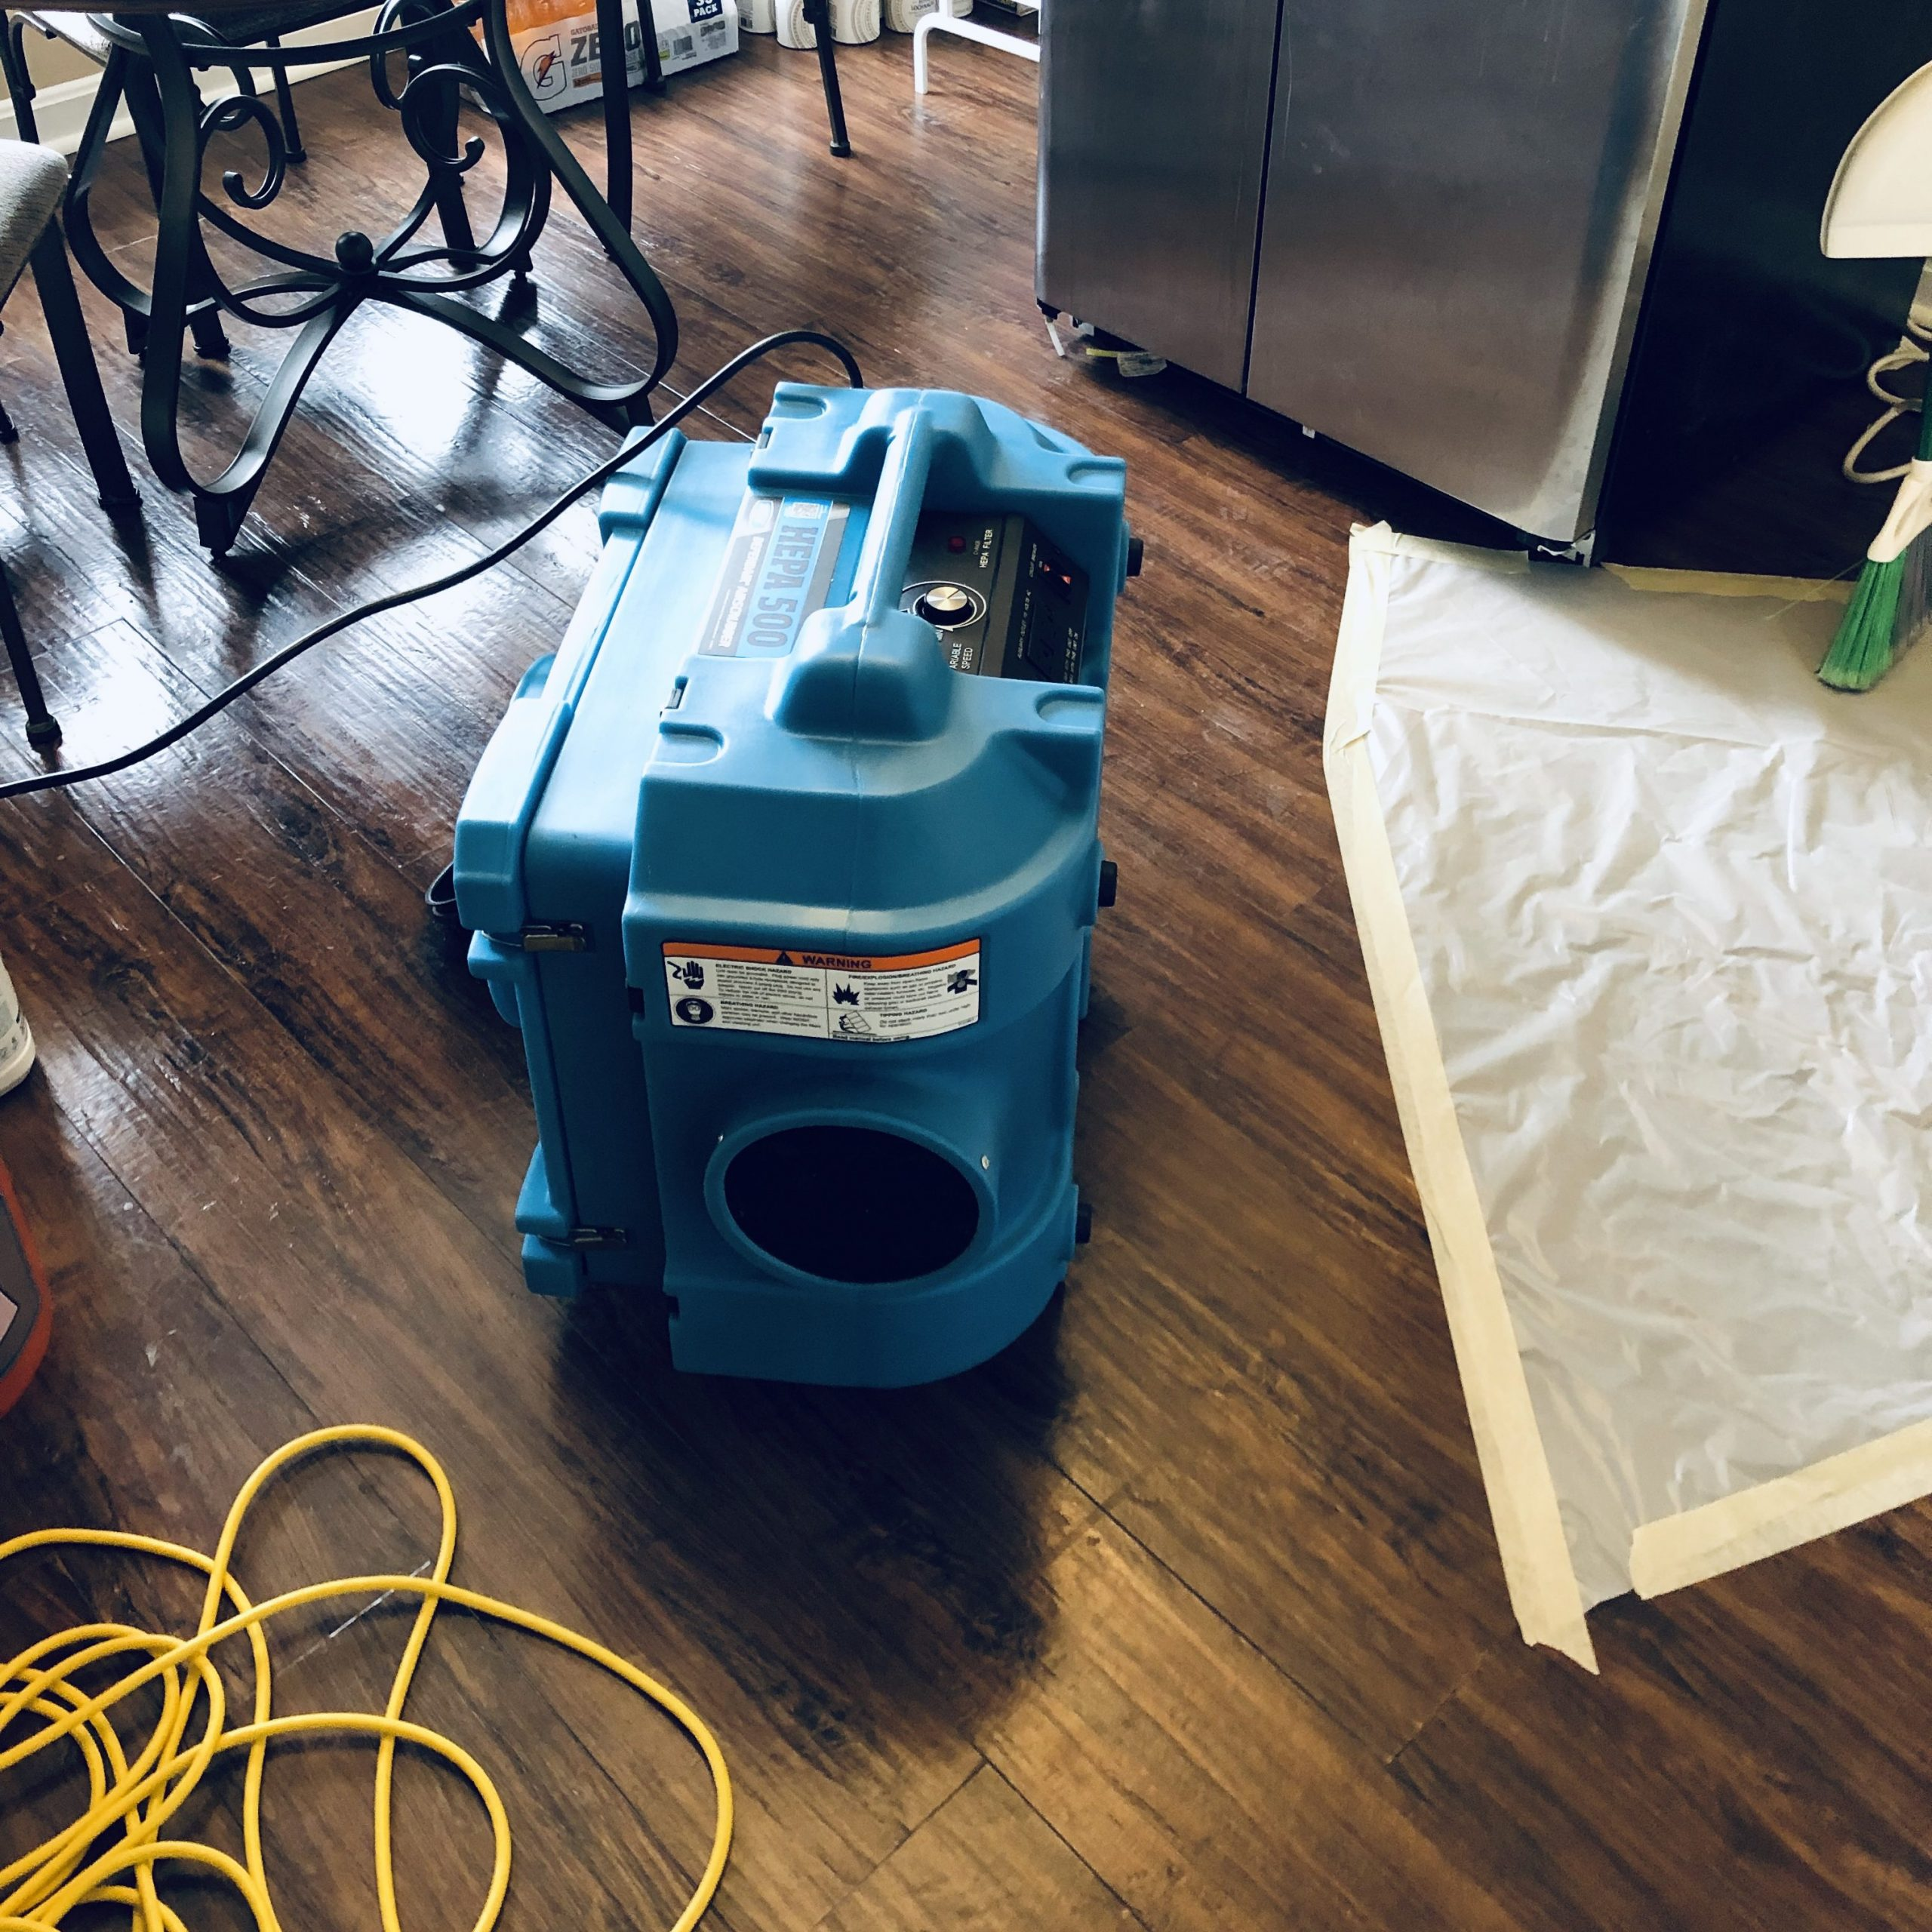 Frequently Asked Questions about the Air Scrubber DefendAir HEPA 500